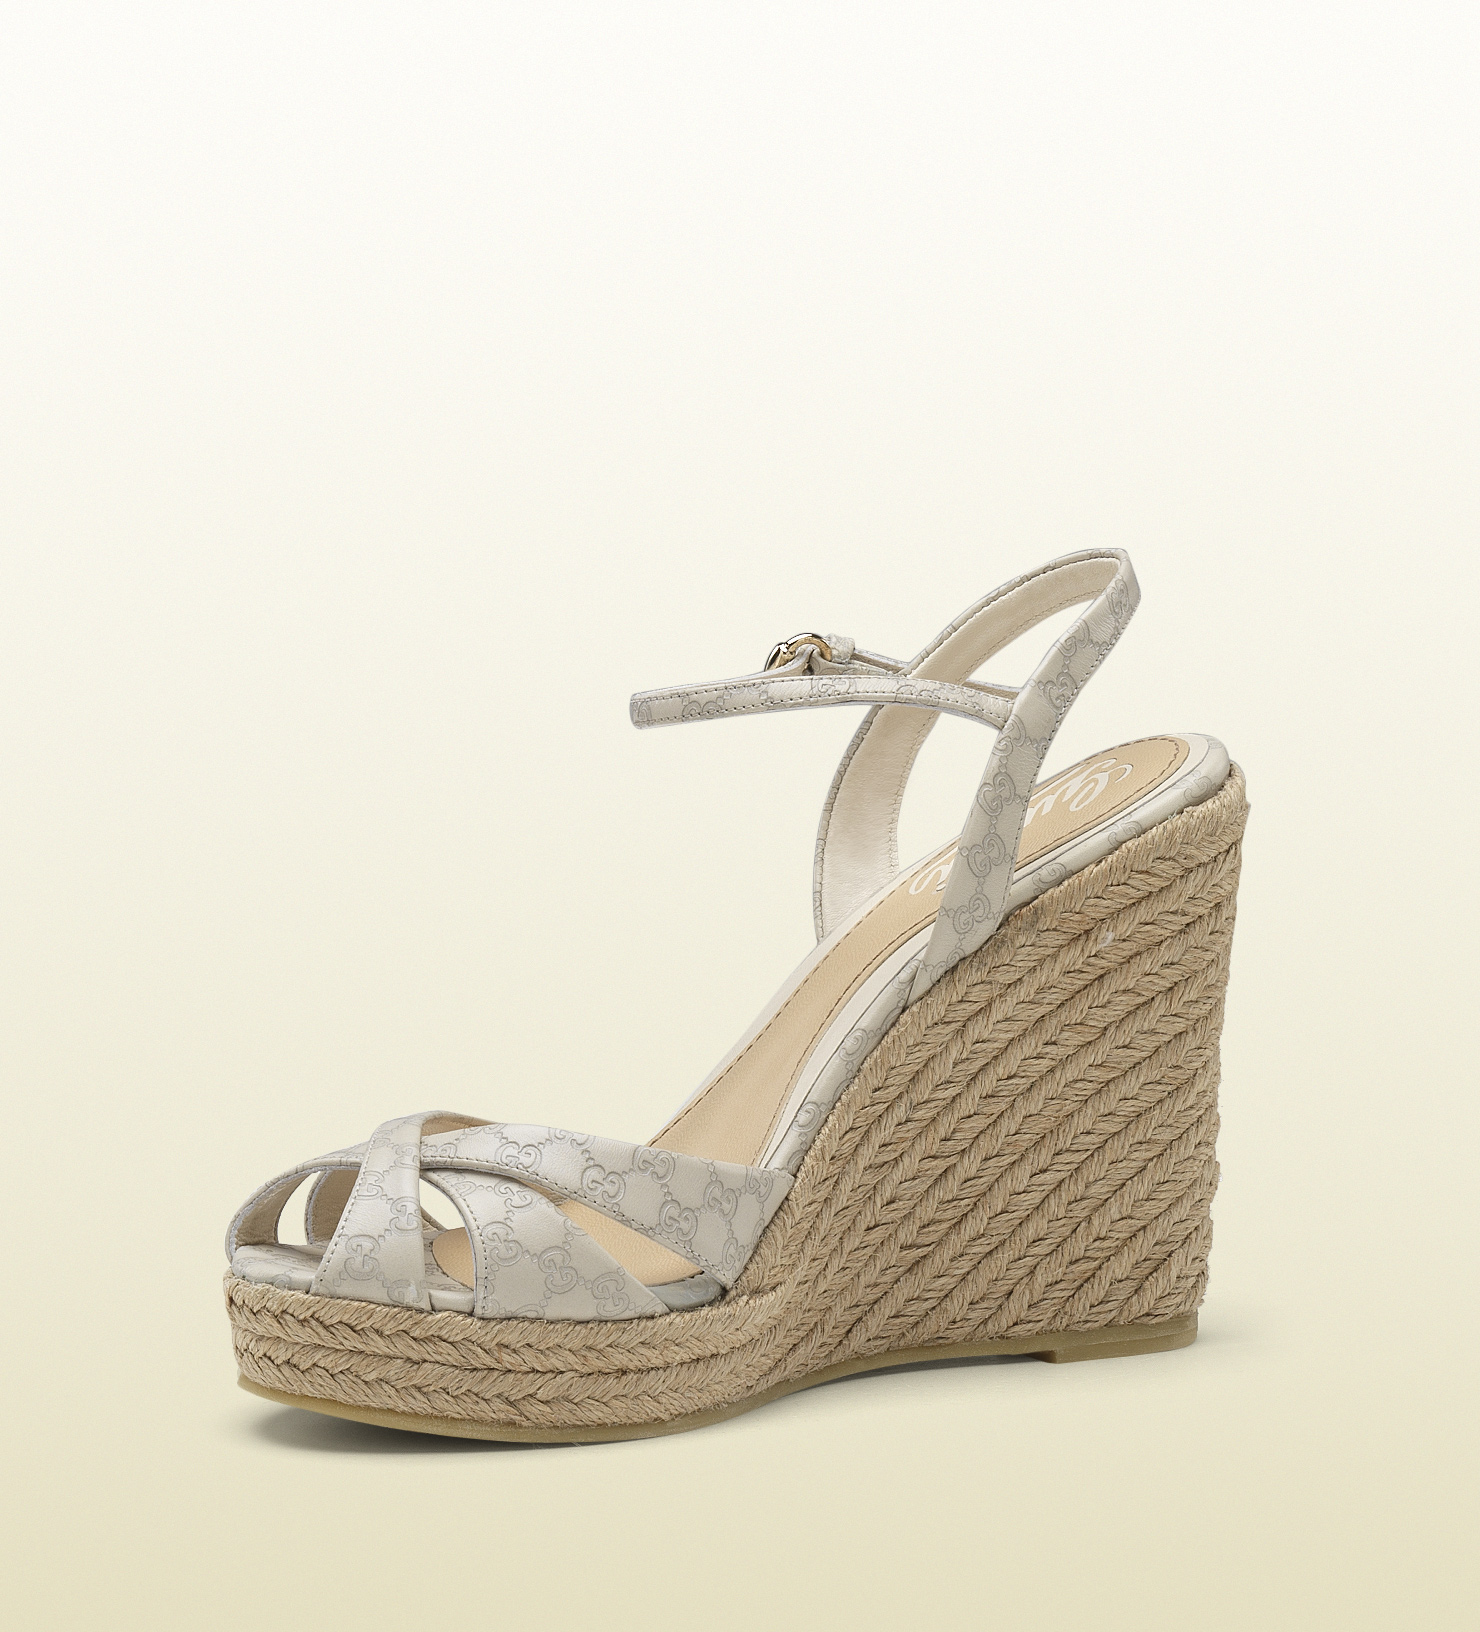 77a9af28ddeab8 Lyst - Gucci Penelope Strappy Espadrille Wedge Sandal in Natural